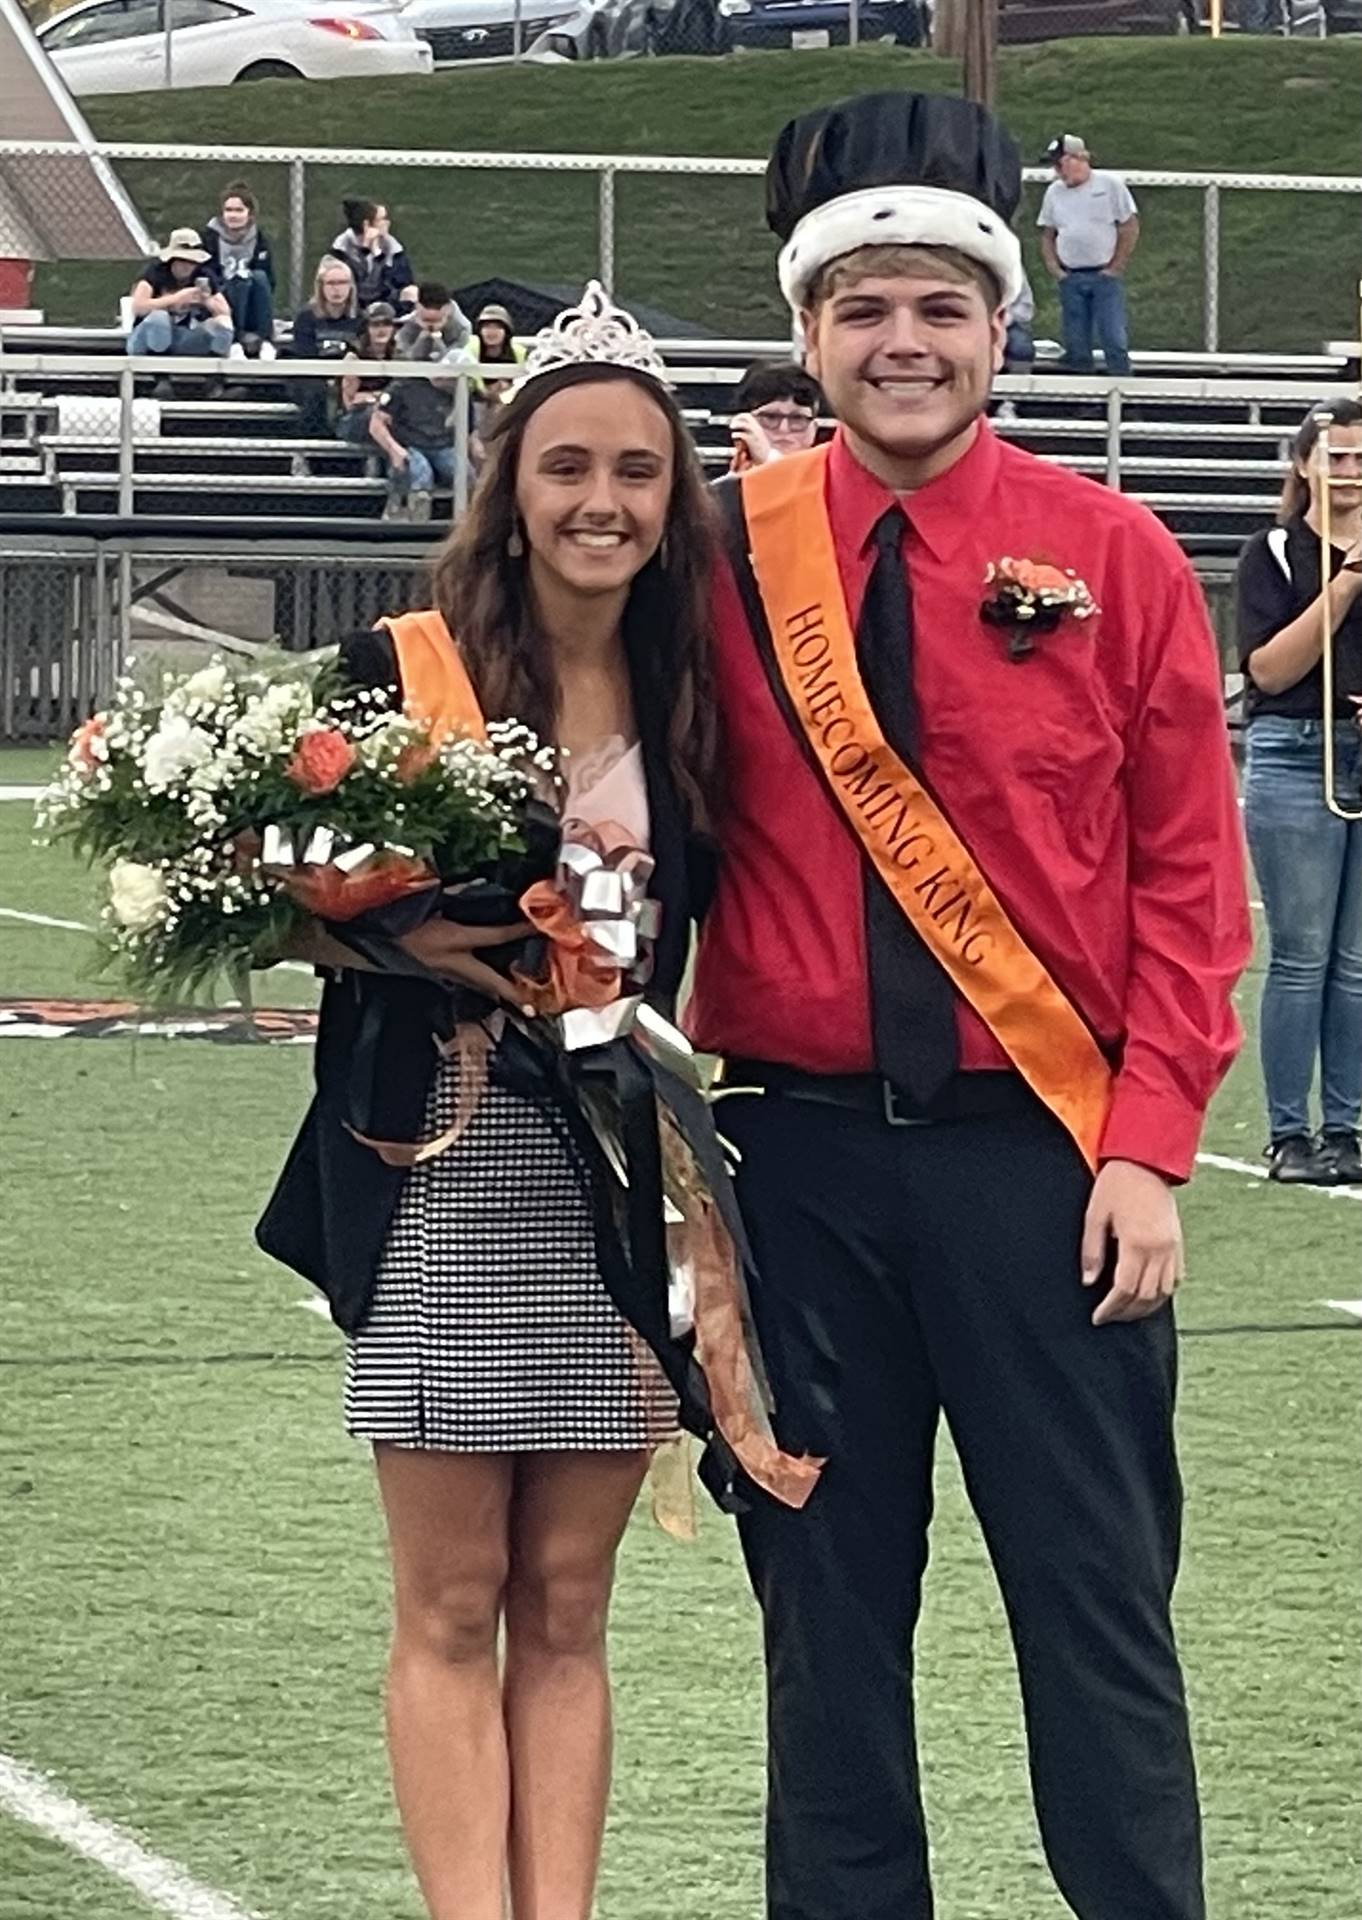 Homecoming King and Queen 2021